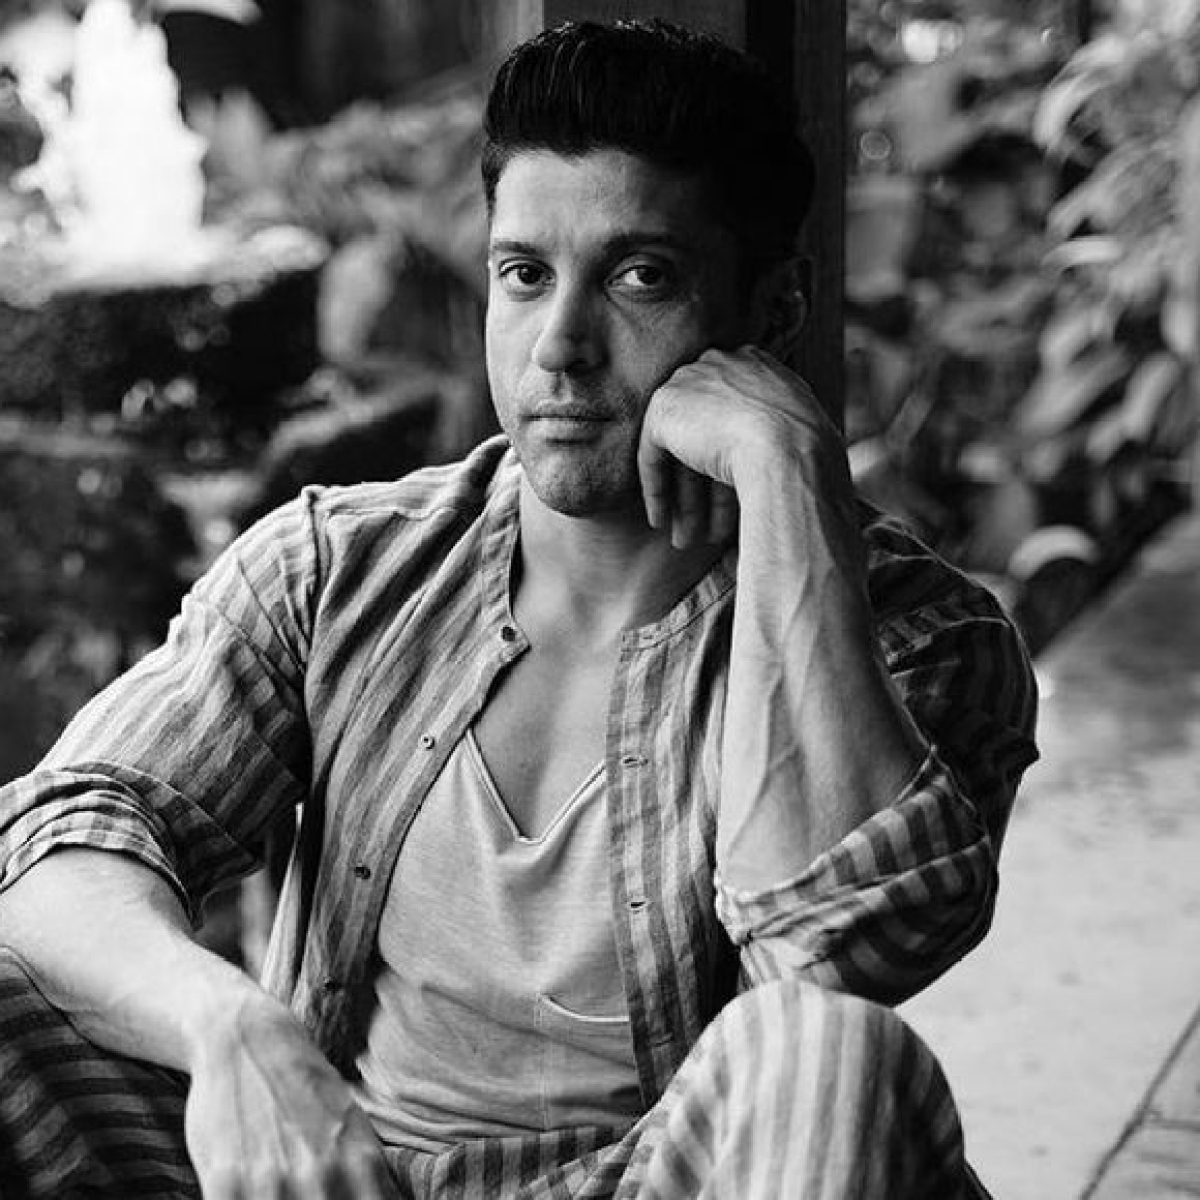 Farhan Akhtar expresses his views on election coverage, says 'one can't help but be saddened after watching it'